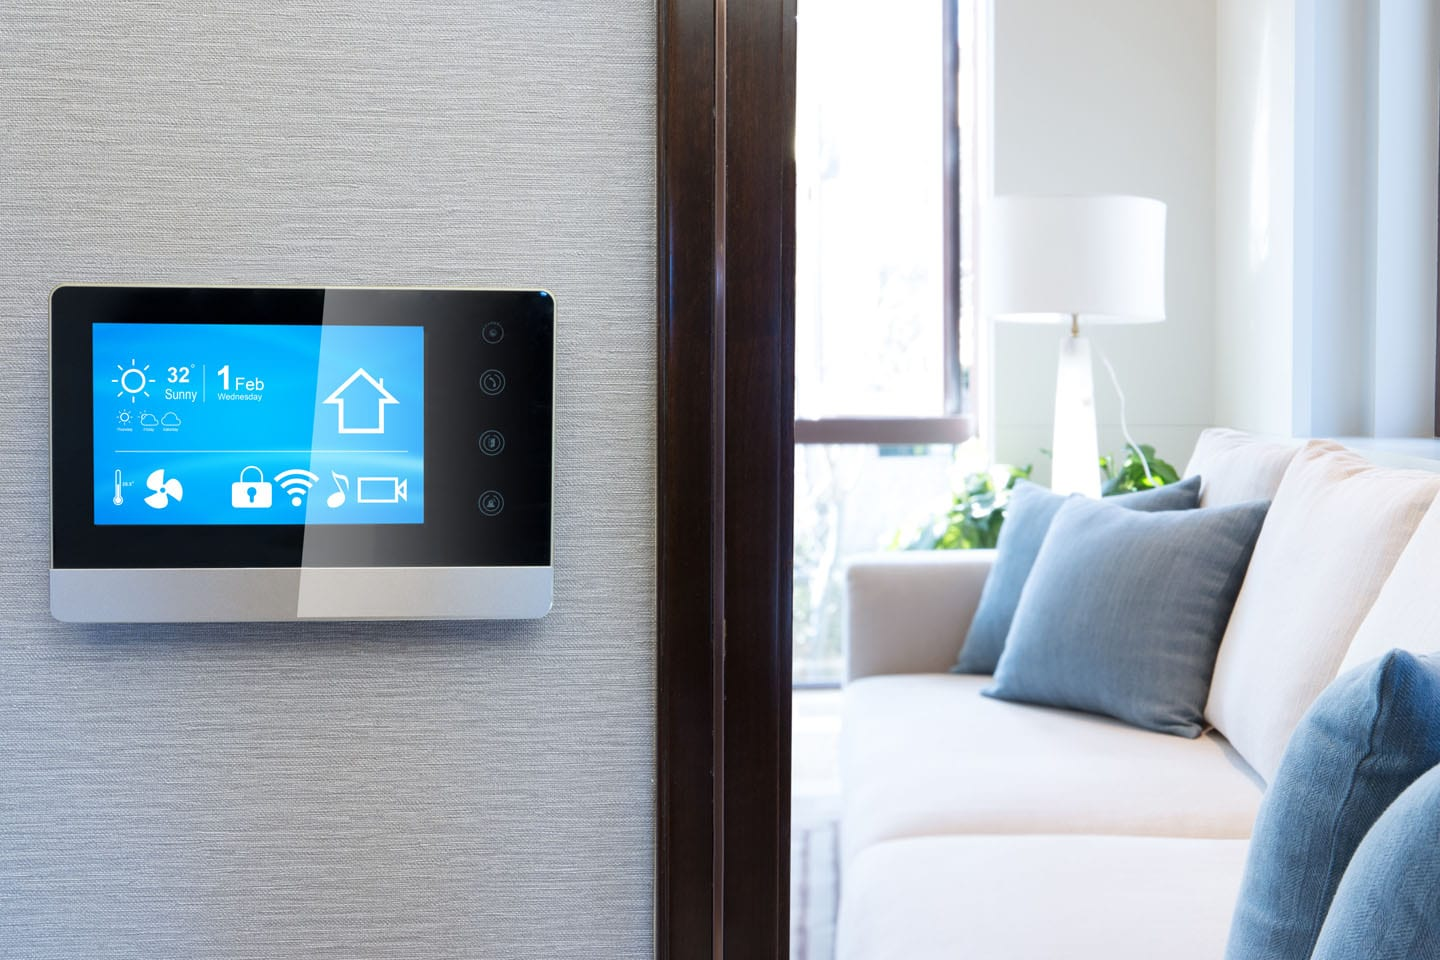 extra comfort thanks to programmable, smart thermostats in Alton Illinois